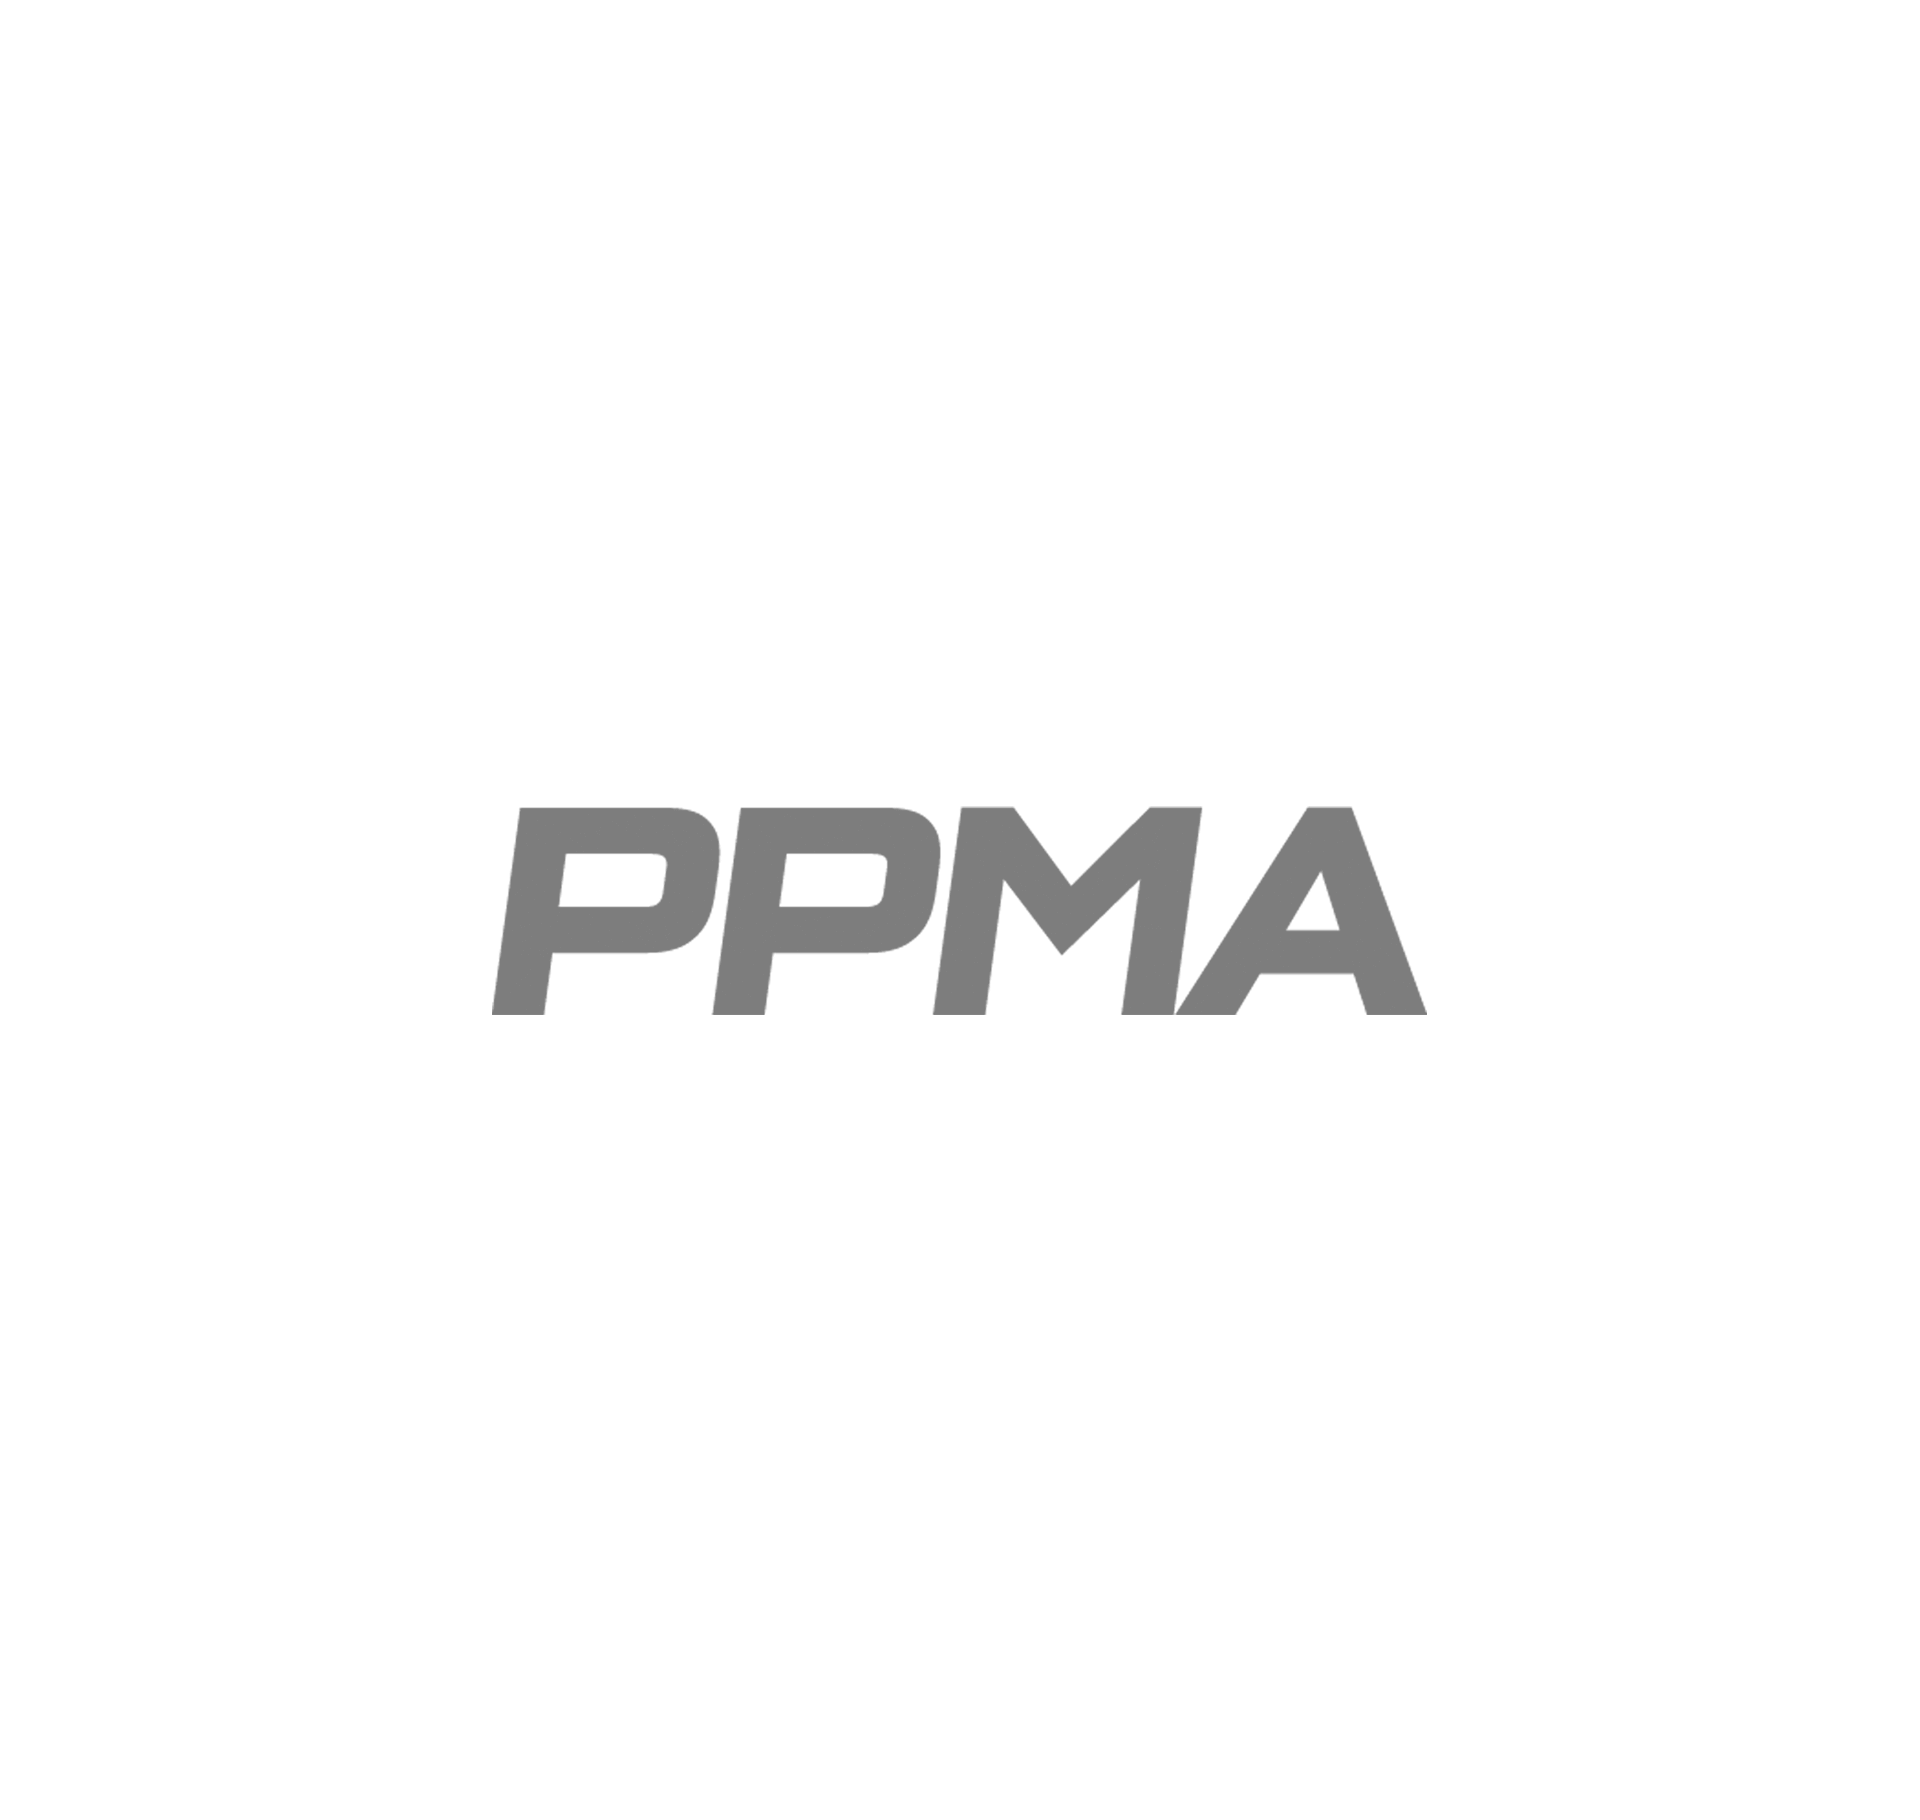 Mount Packaging - PPMA